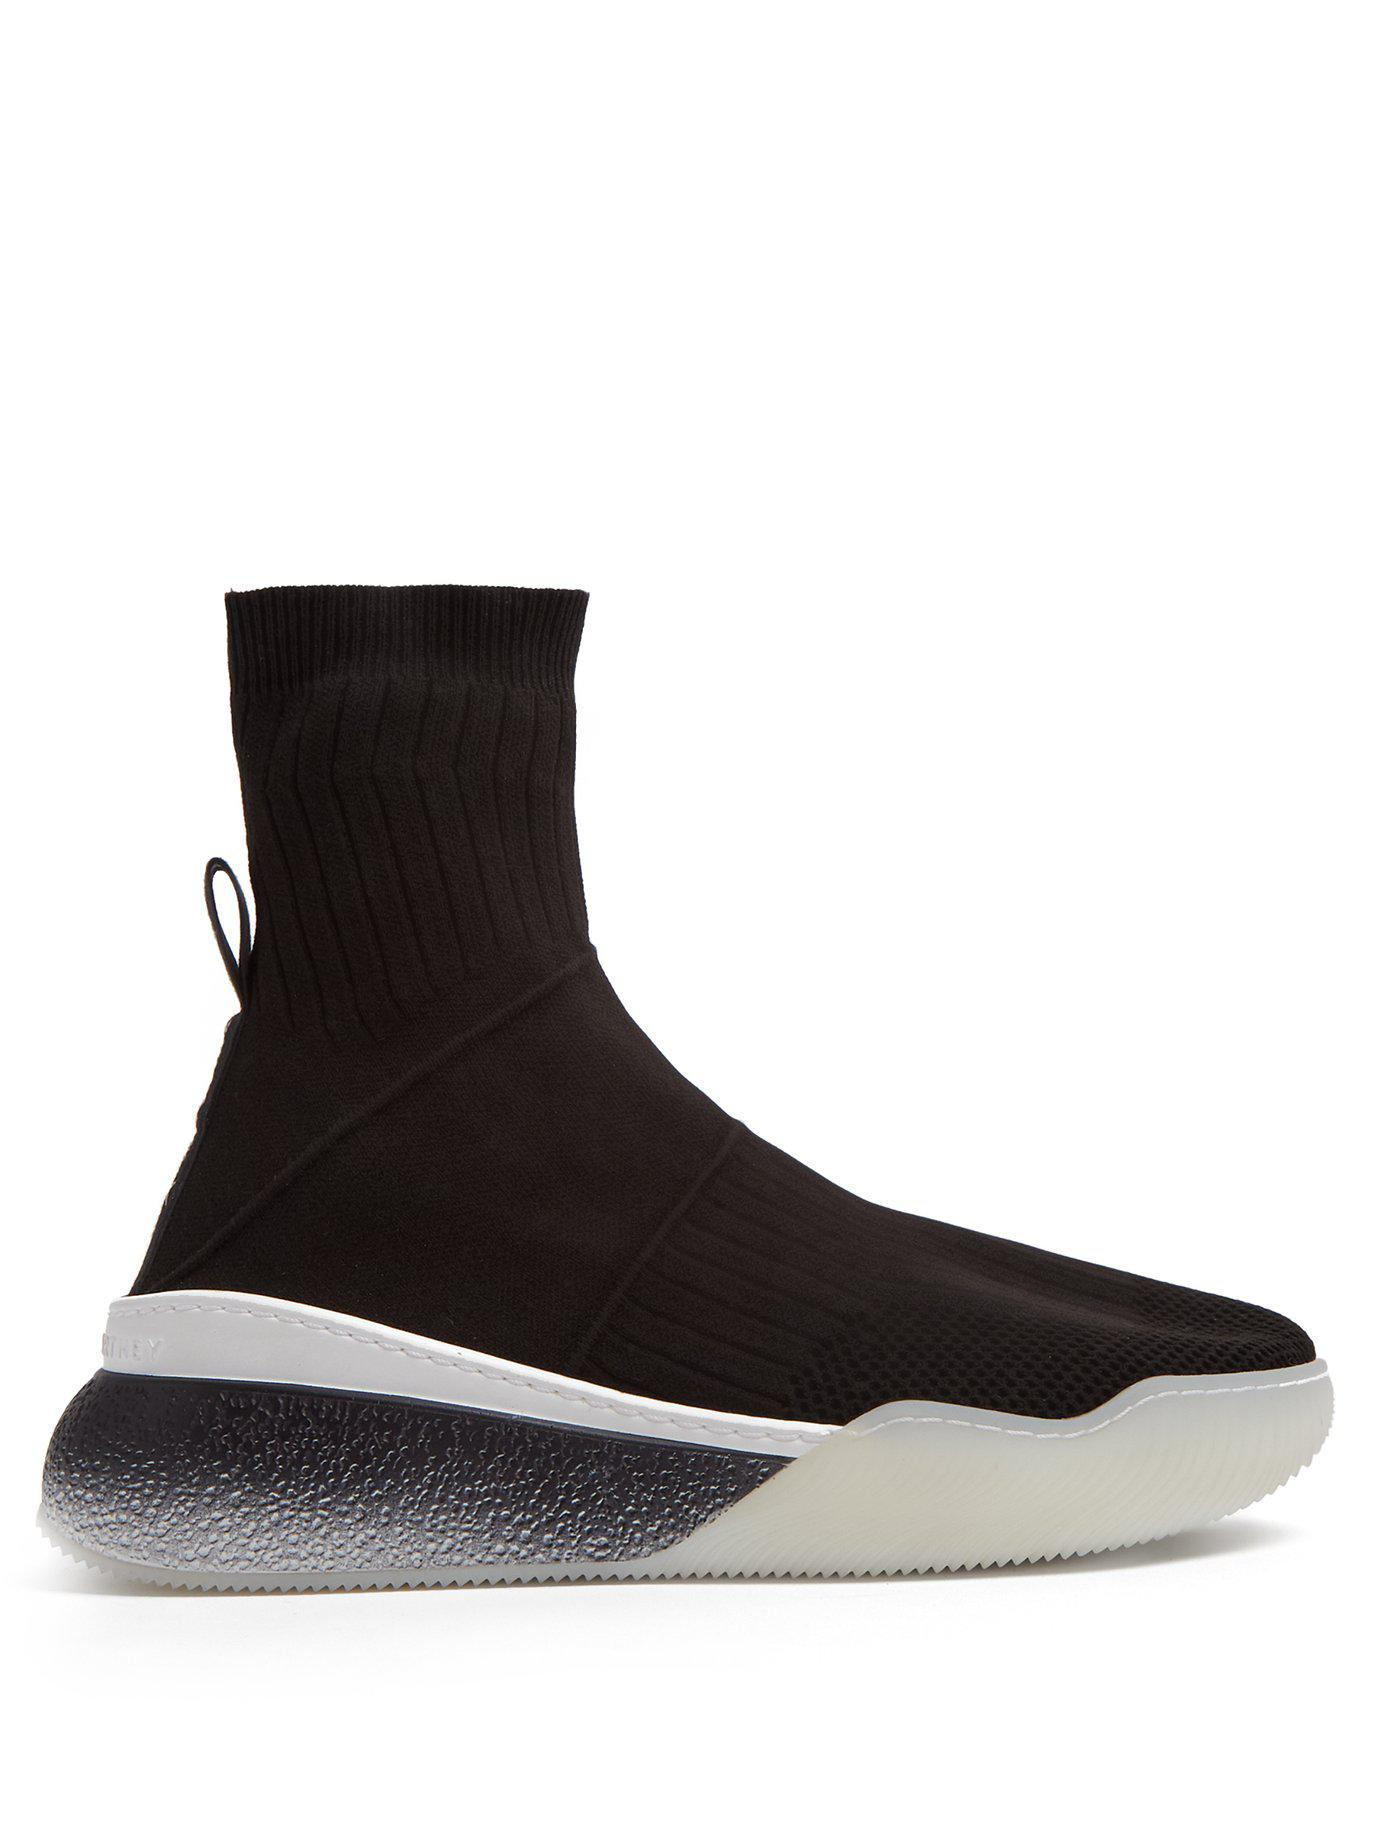 5a35657d3168 Lyst - Stella McCartney Loop Sock Trainers in Black - Save 22%